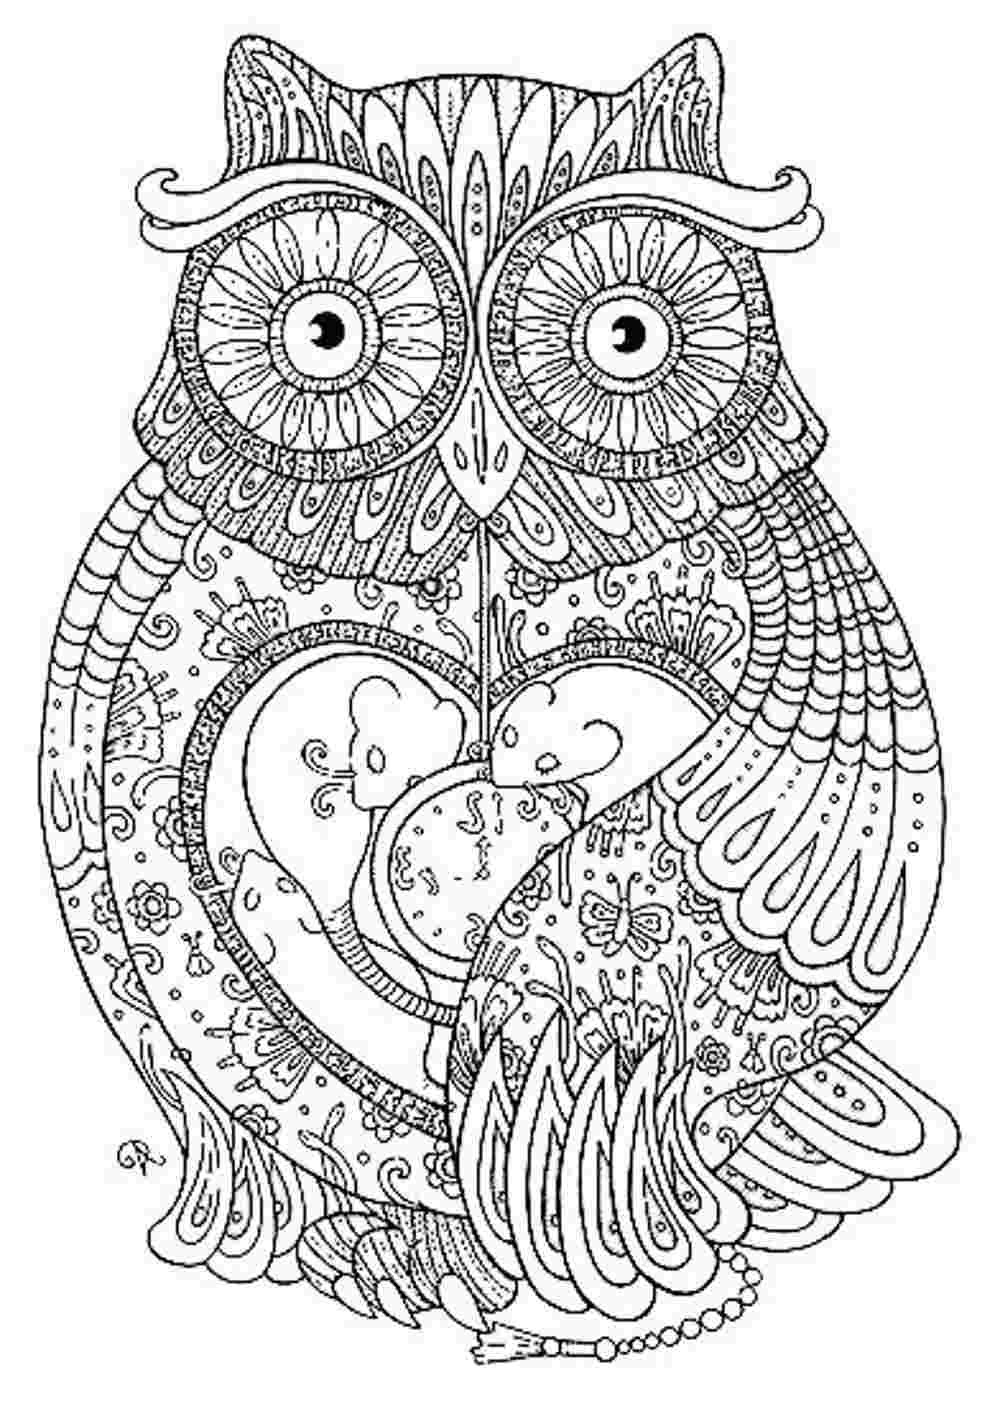 Free Coloring Pages For Adults Printable  44 Awesome Free Printable Coloring Pages for Adults